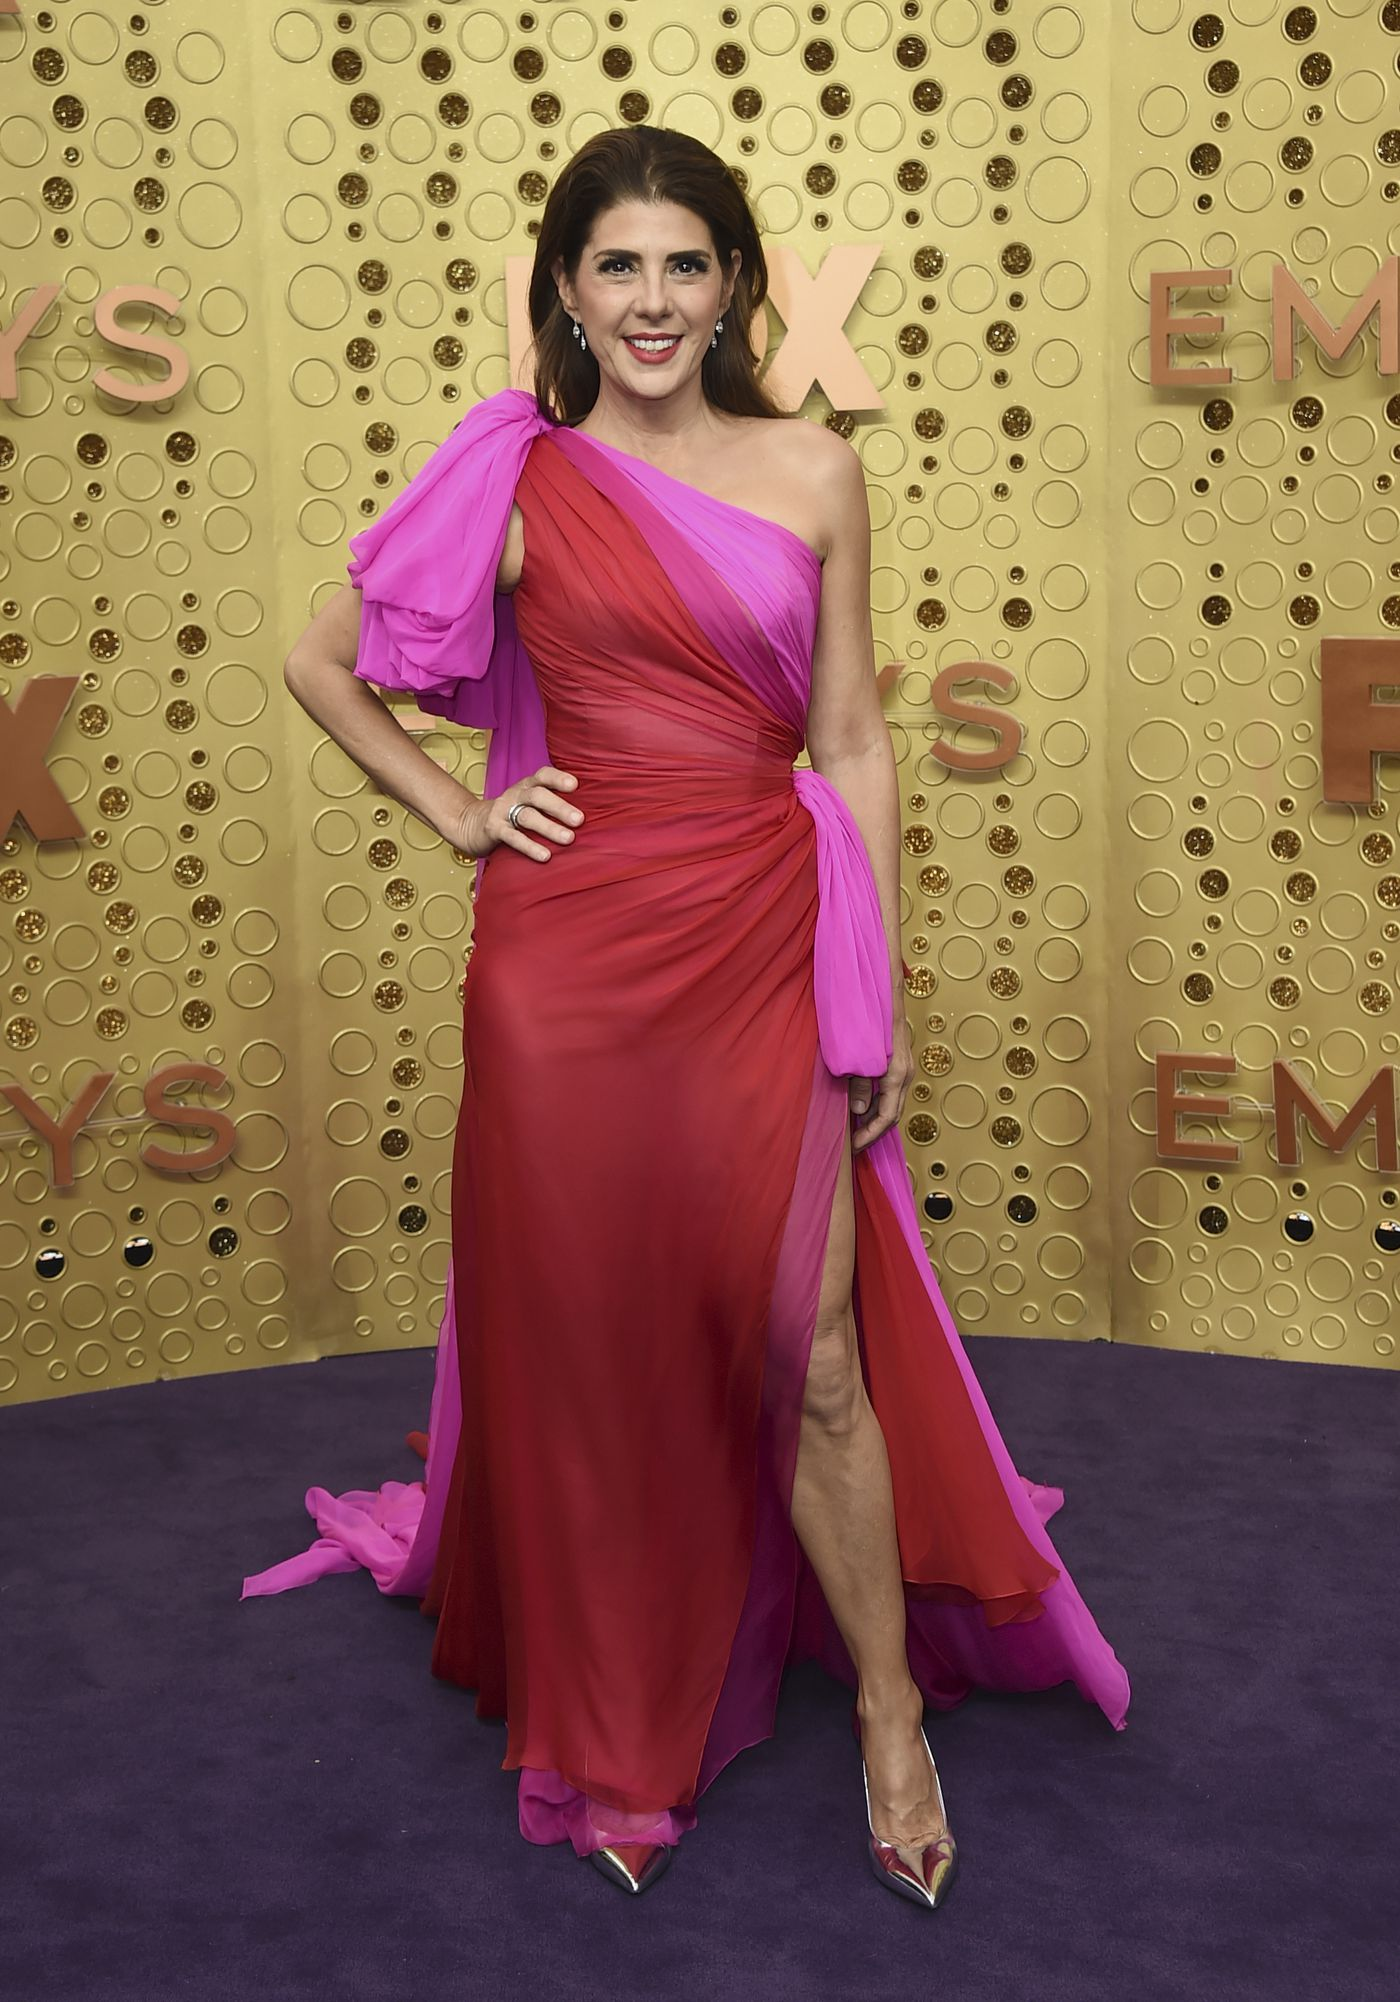 On Broadway Now Mary Louise Parker Marisa Tomei And Hot Plays Without Huge Stars See more ideas about marisa, marissa tomei, marisa tomei hot. mary louise parker marisa tomei